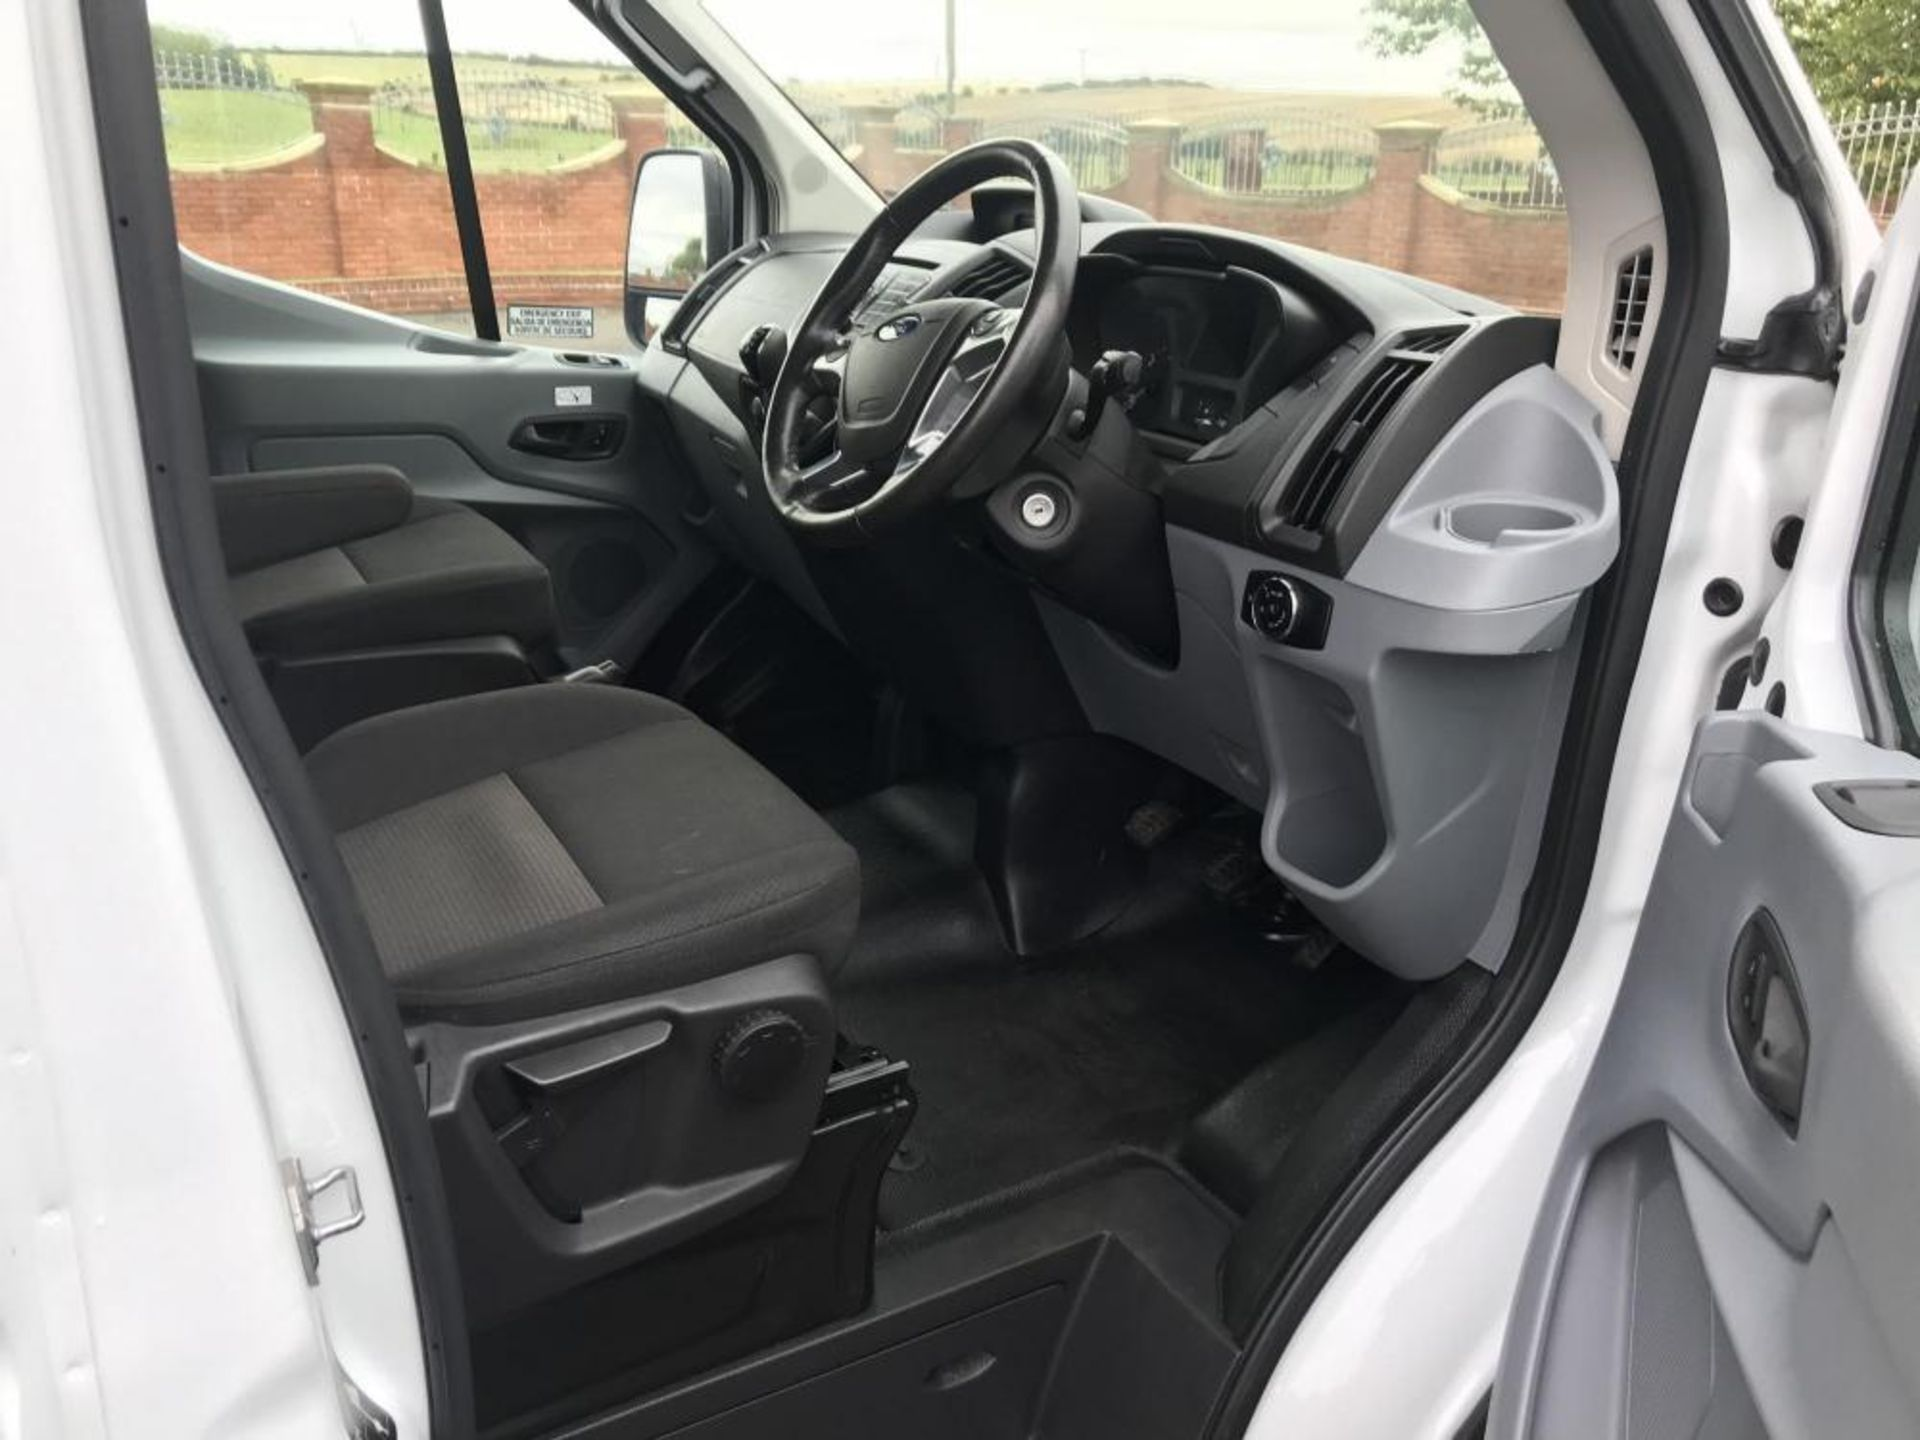 2017/17 REG FORD TRANSIT 460 ECONETIC TECH 2.2 DIESEL WHITE 17 SEAT MINIBUS, SHOWING 0 FORMER KEEPER - Image 12 of 17